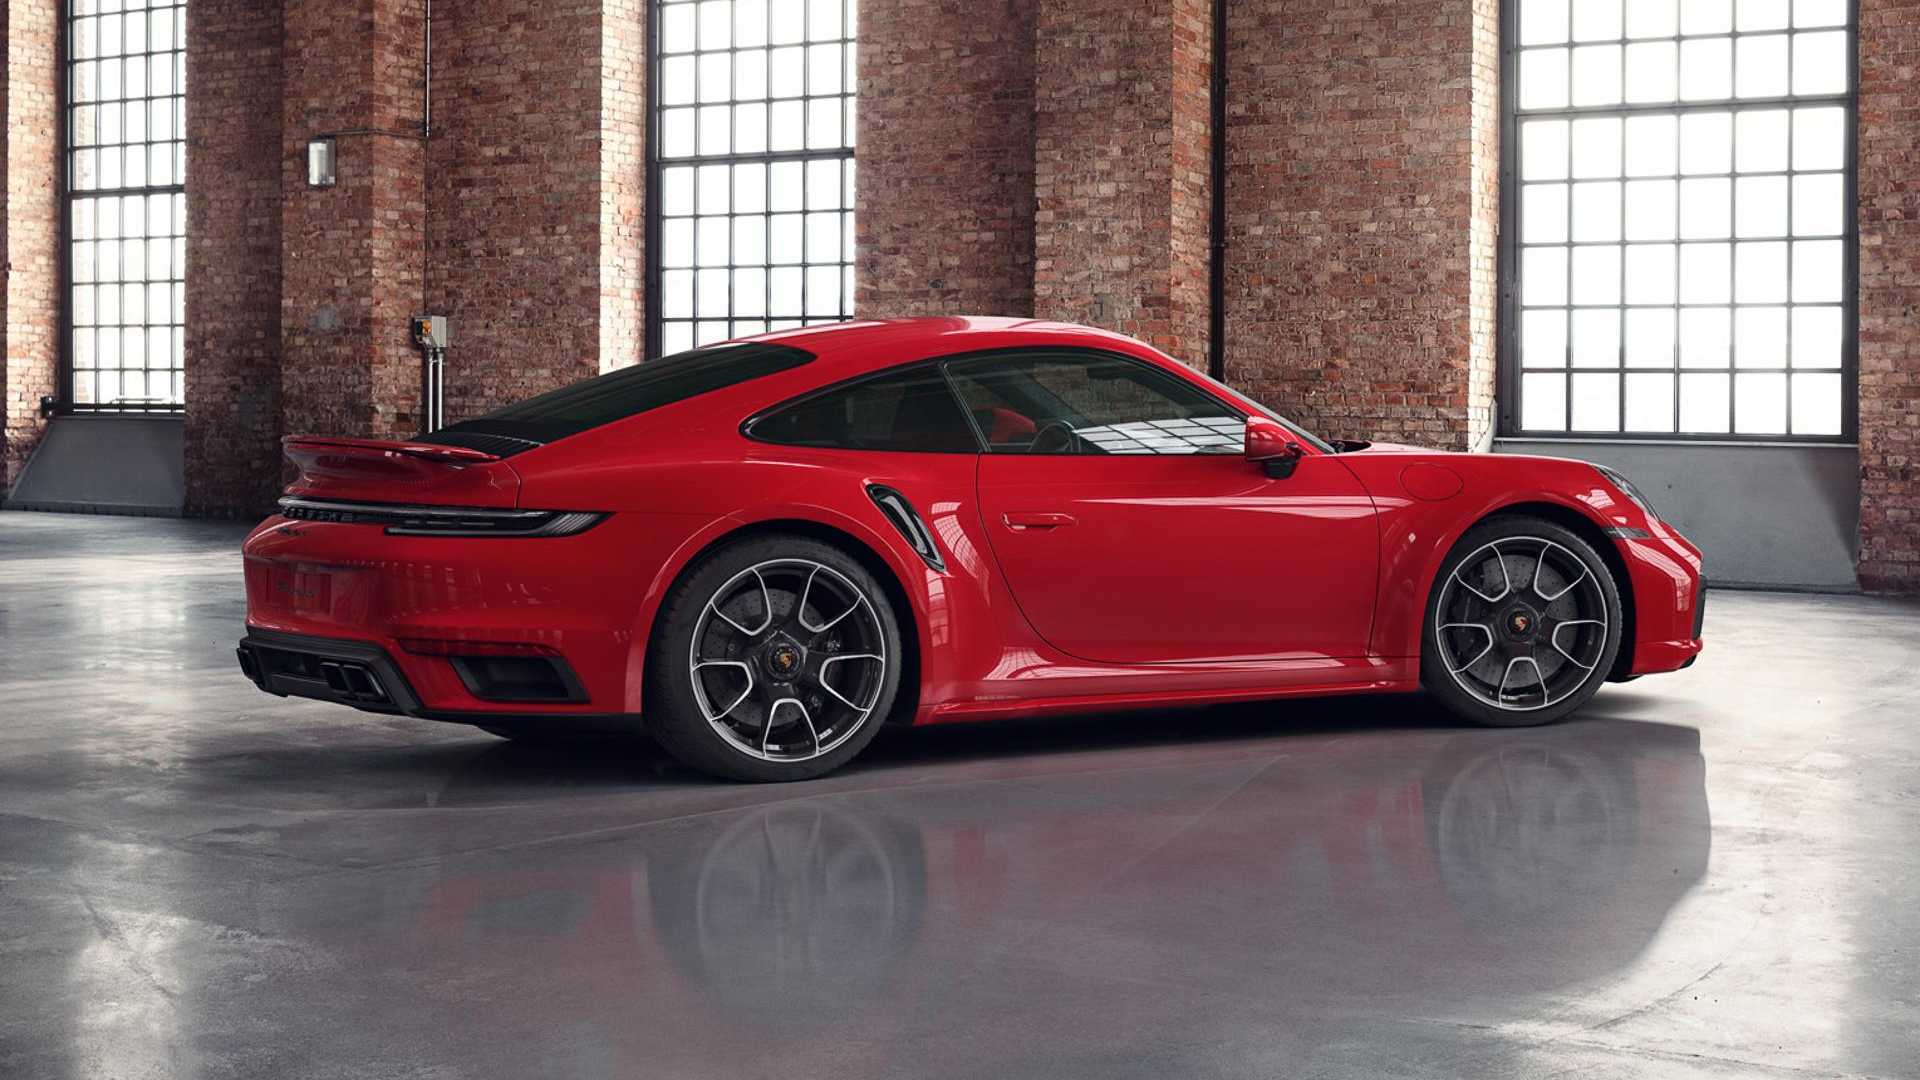 Porsche Exclusive Shows Off Customized 911 Turbo S In Guards Red